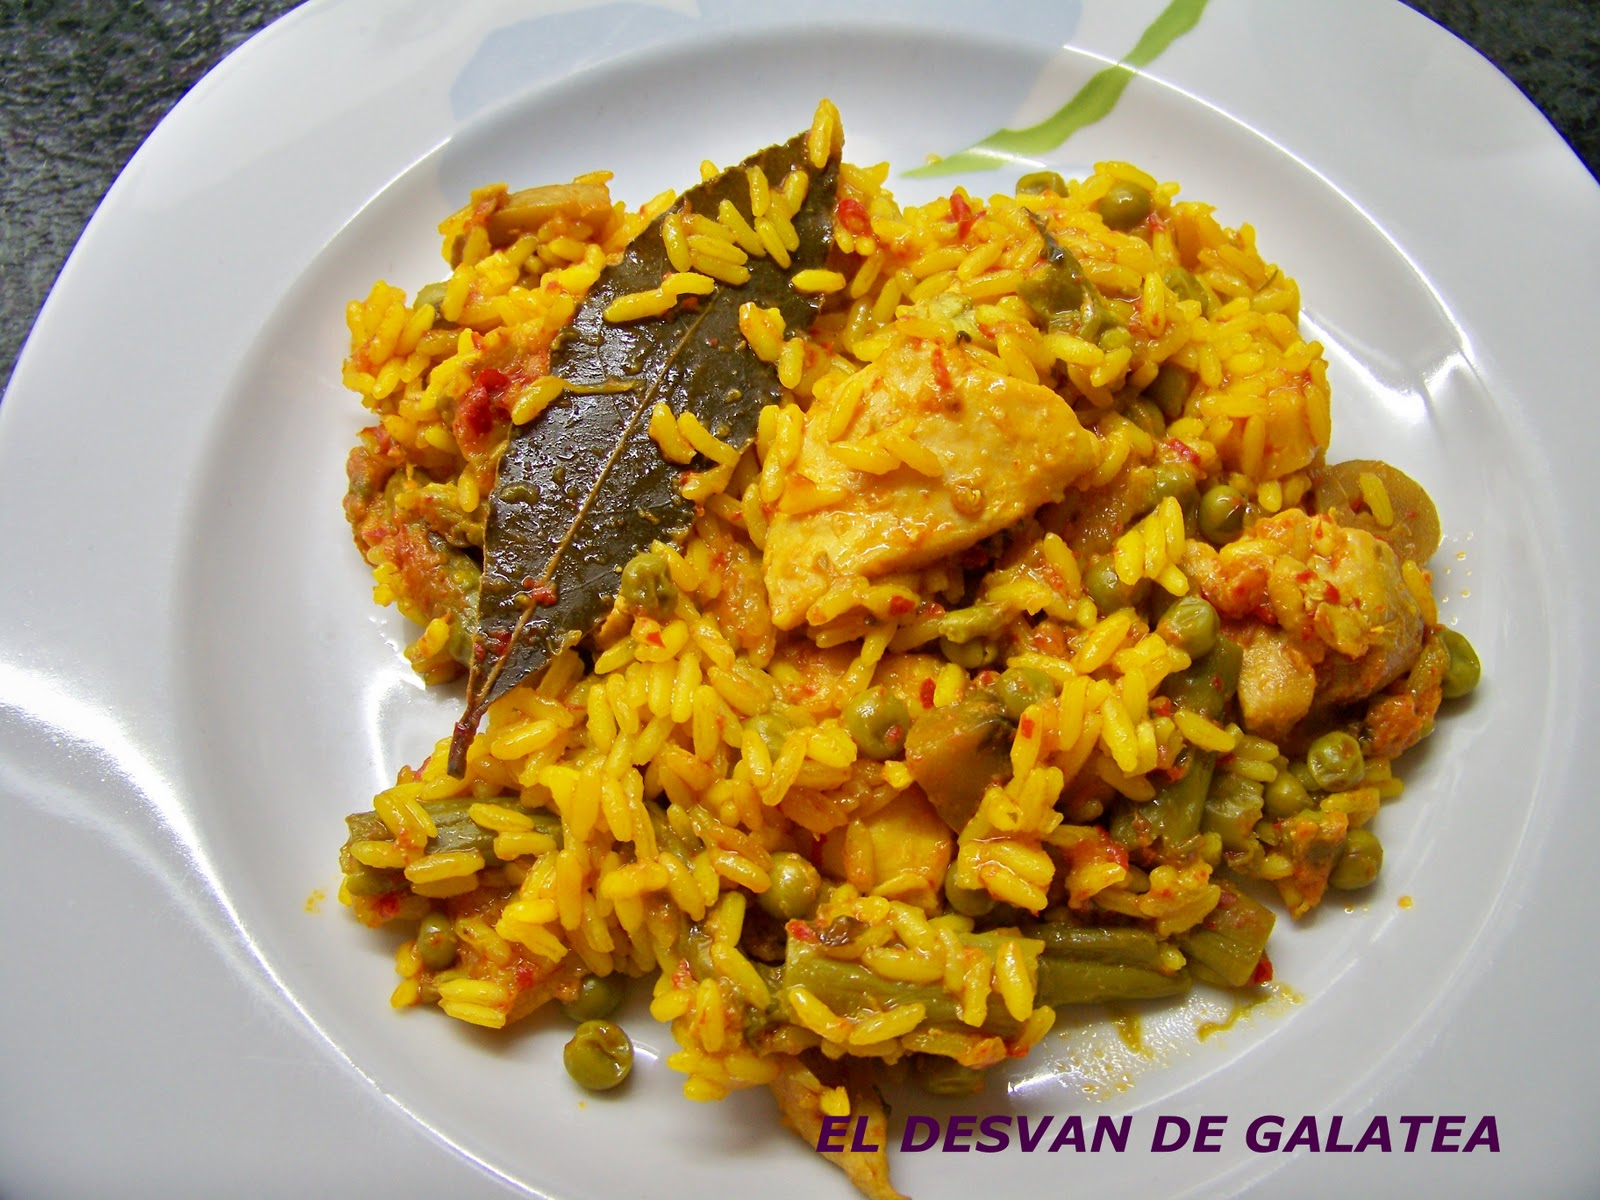 Arroz con pollo recipe dishmaps - Arroz en blanco con pollo ...